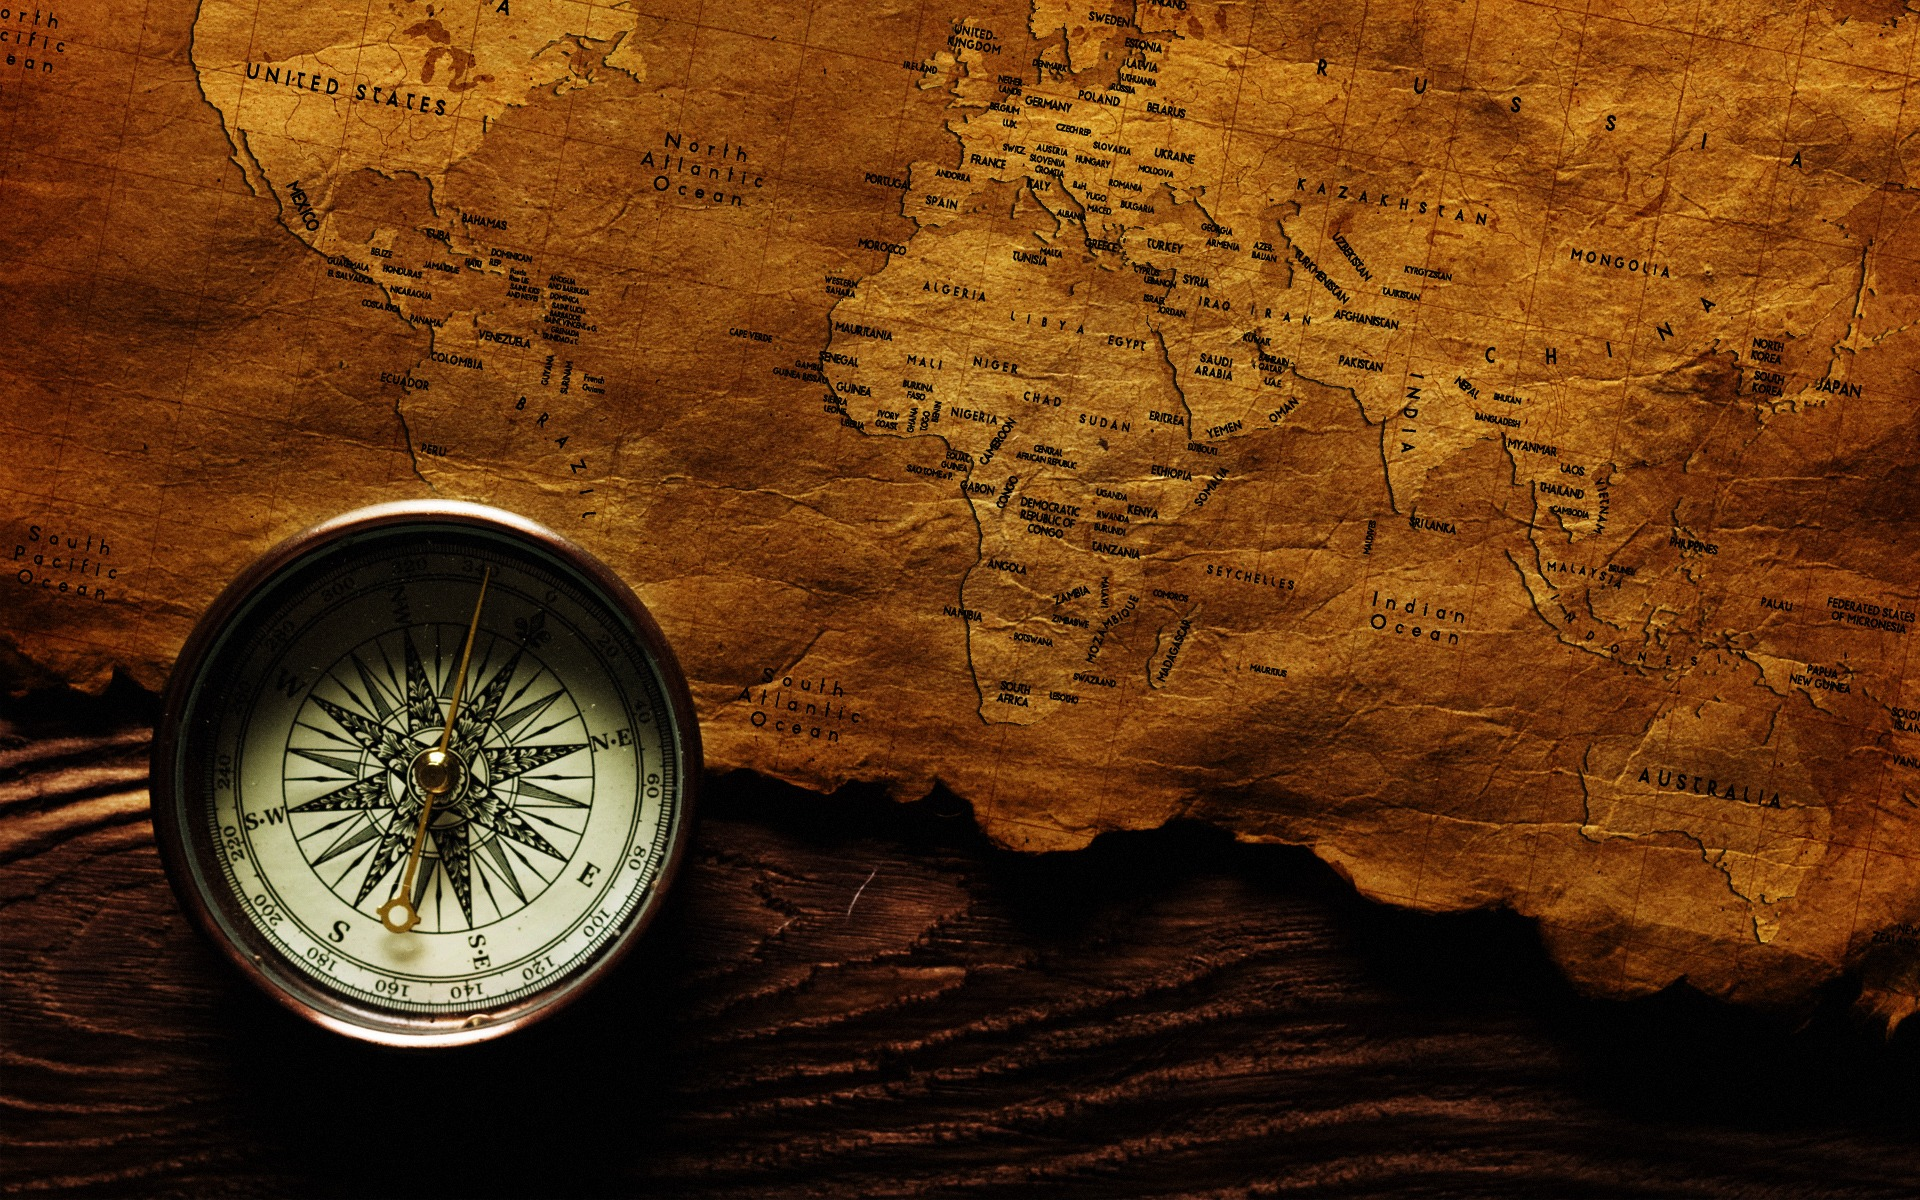 Compass Wallpaper Miscellaneous Other Wallpapers in jpg format for